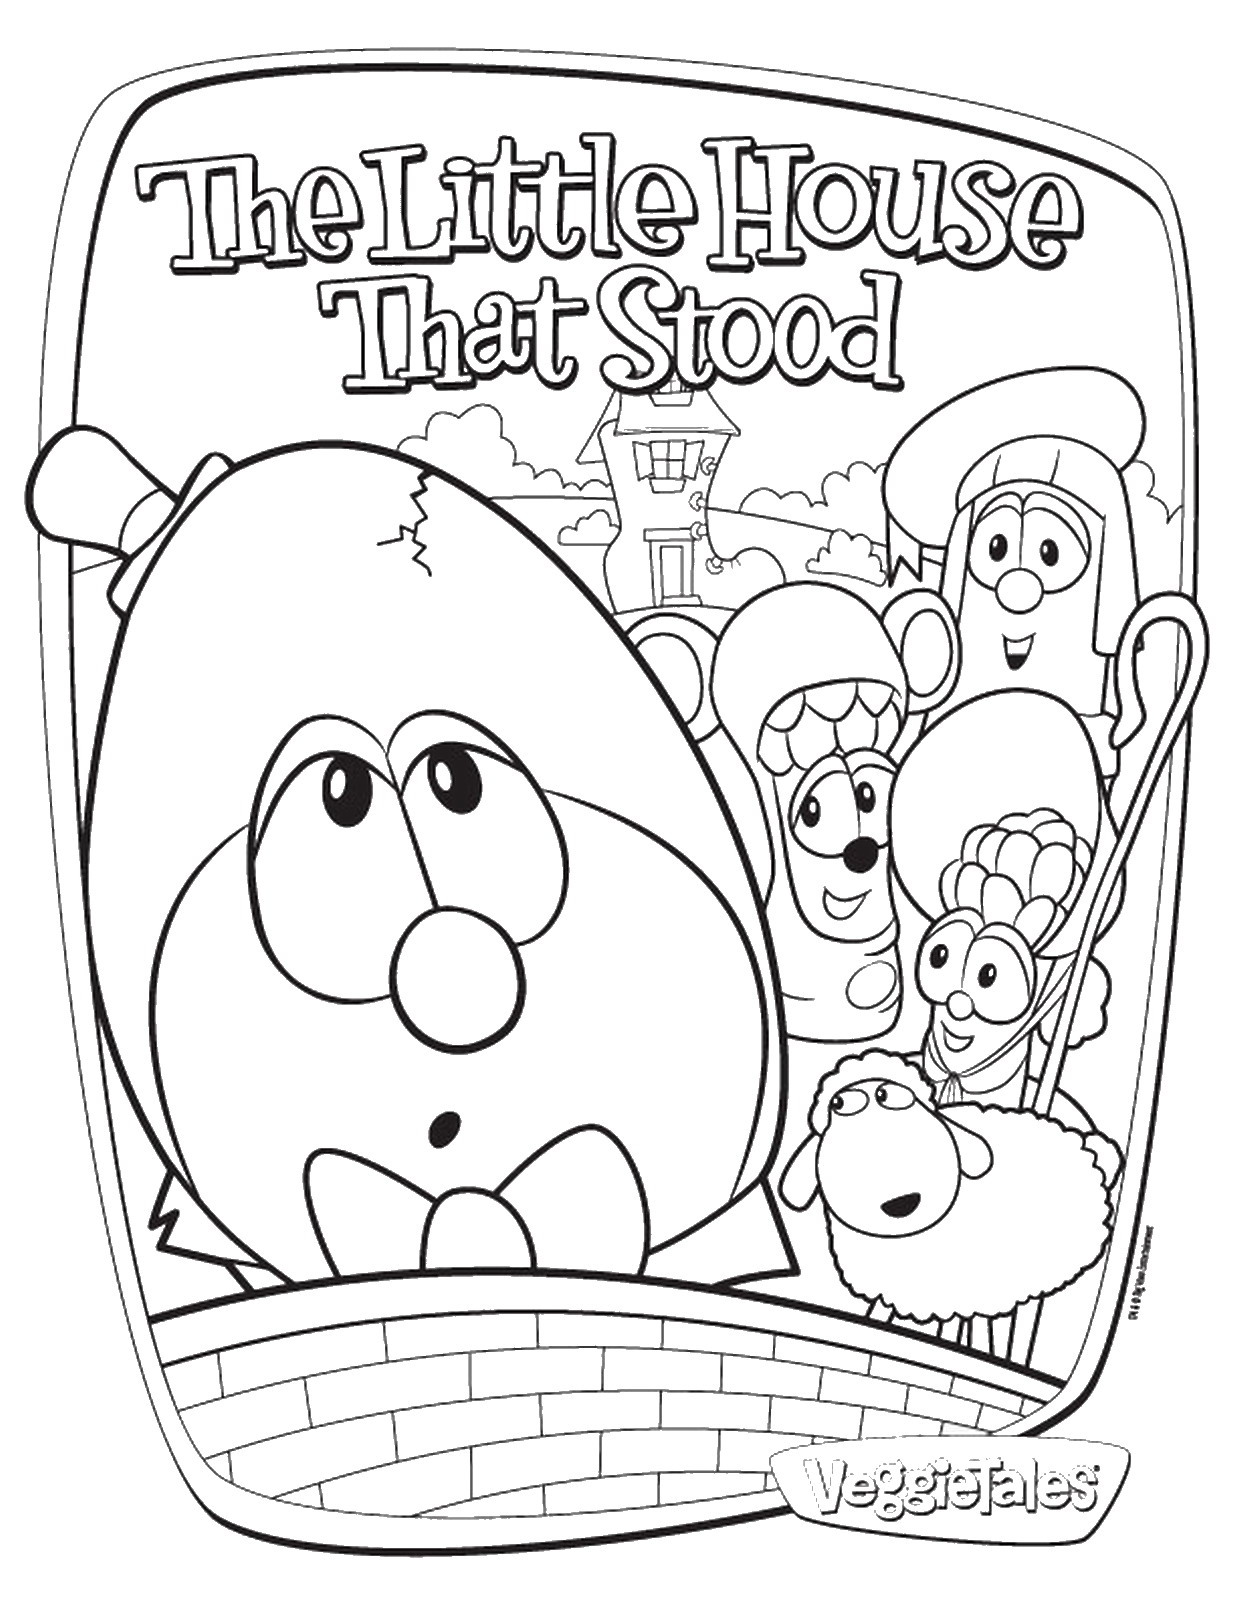 Veggietales Madame Blueberry Coloring Page Coloring Pages